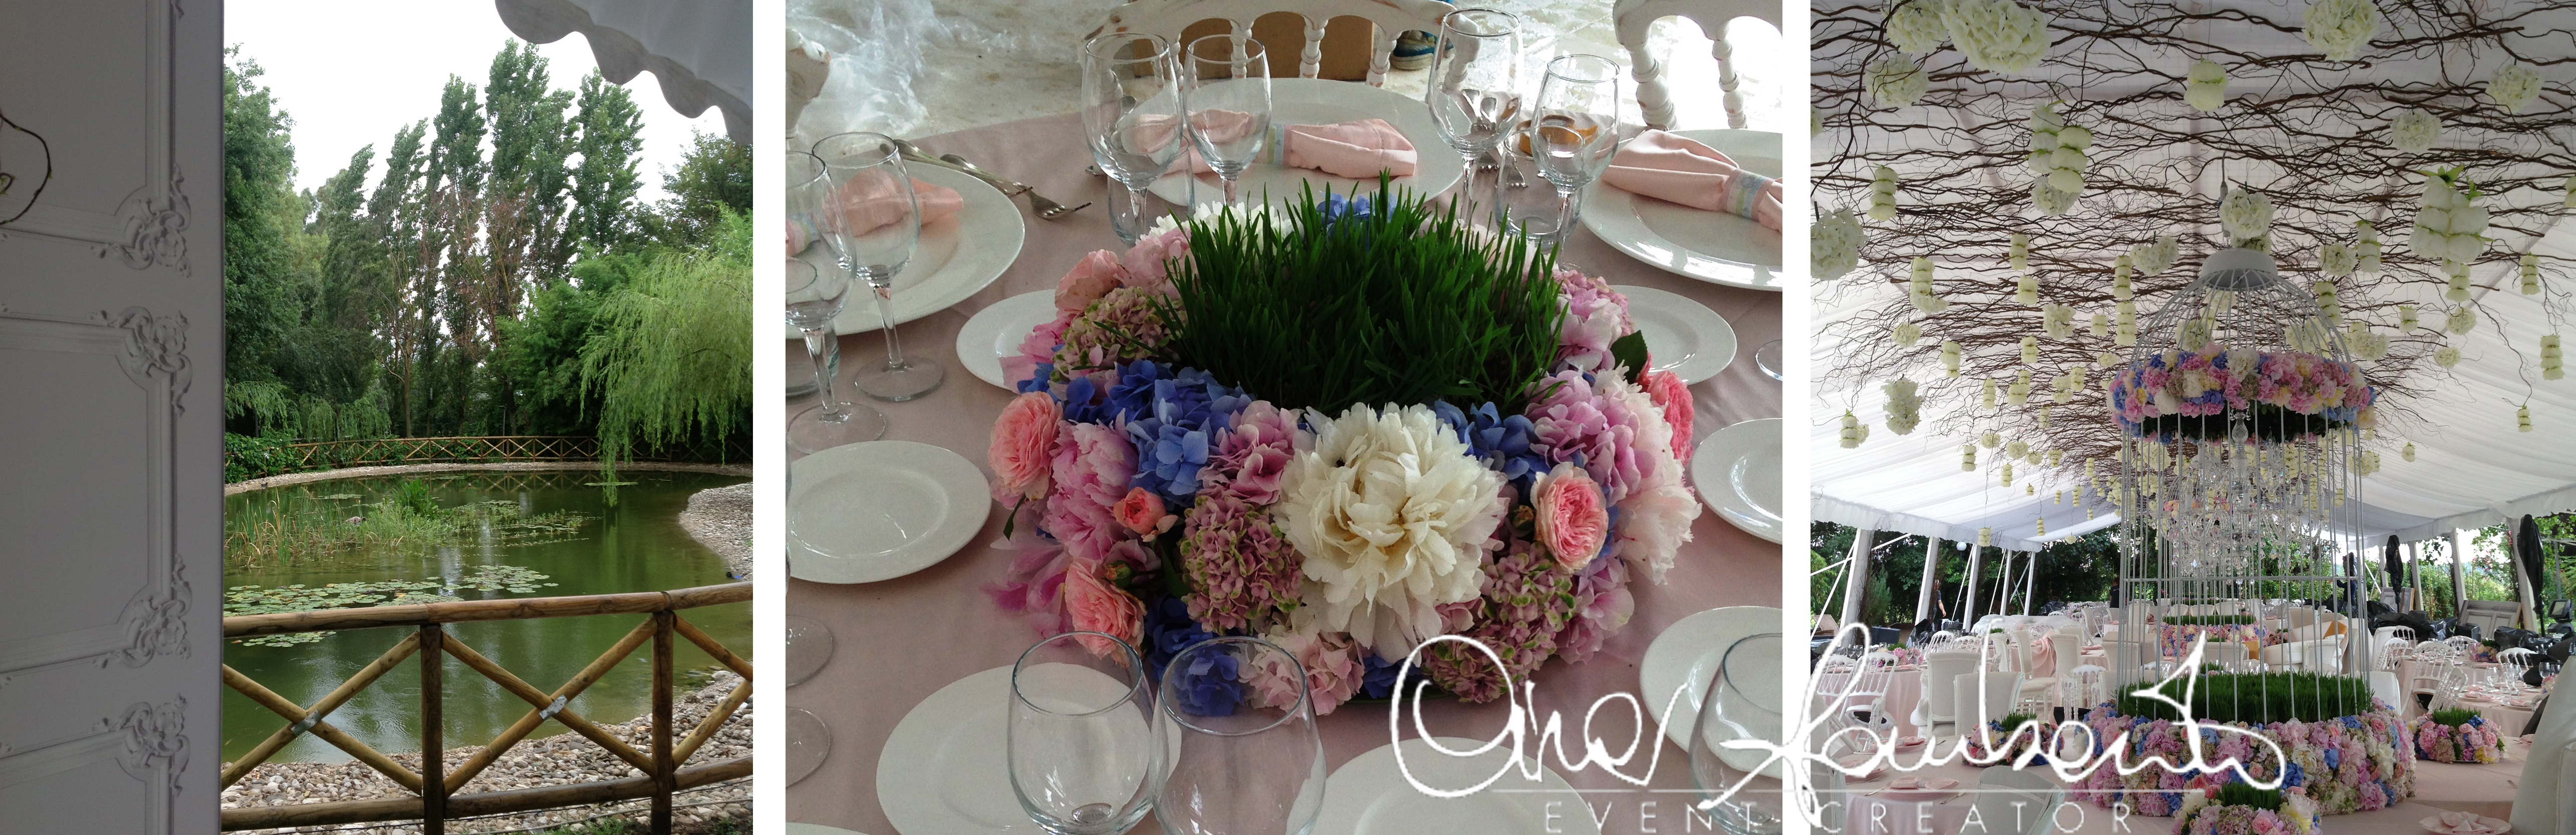 Cira_Lombardo_wedding_04